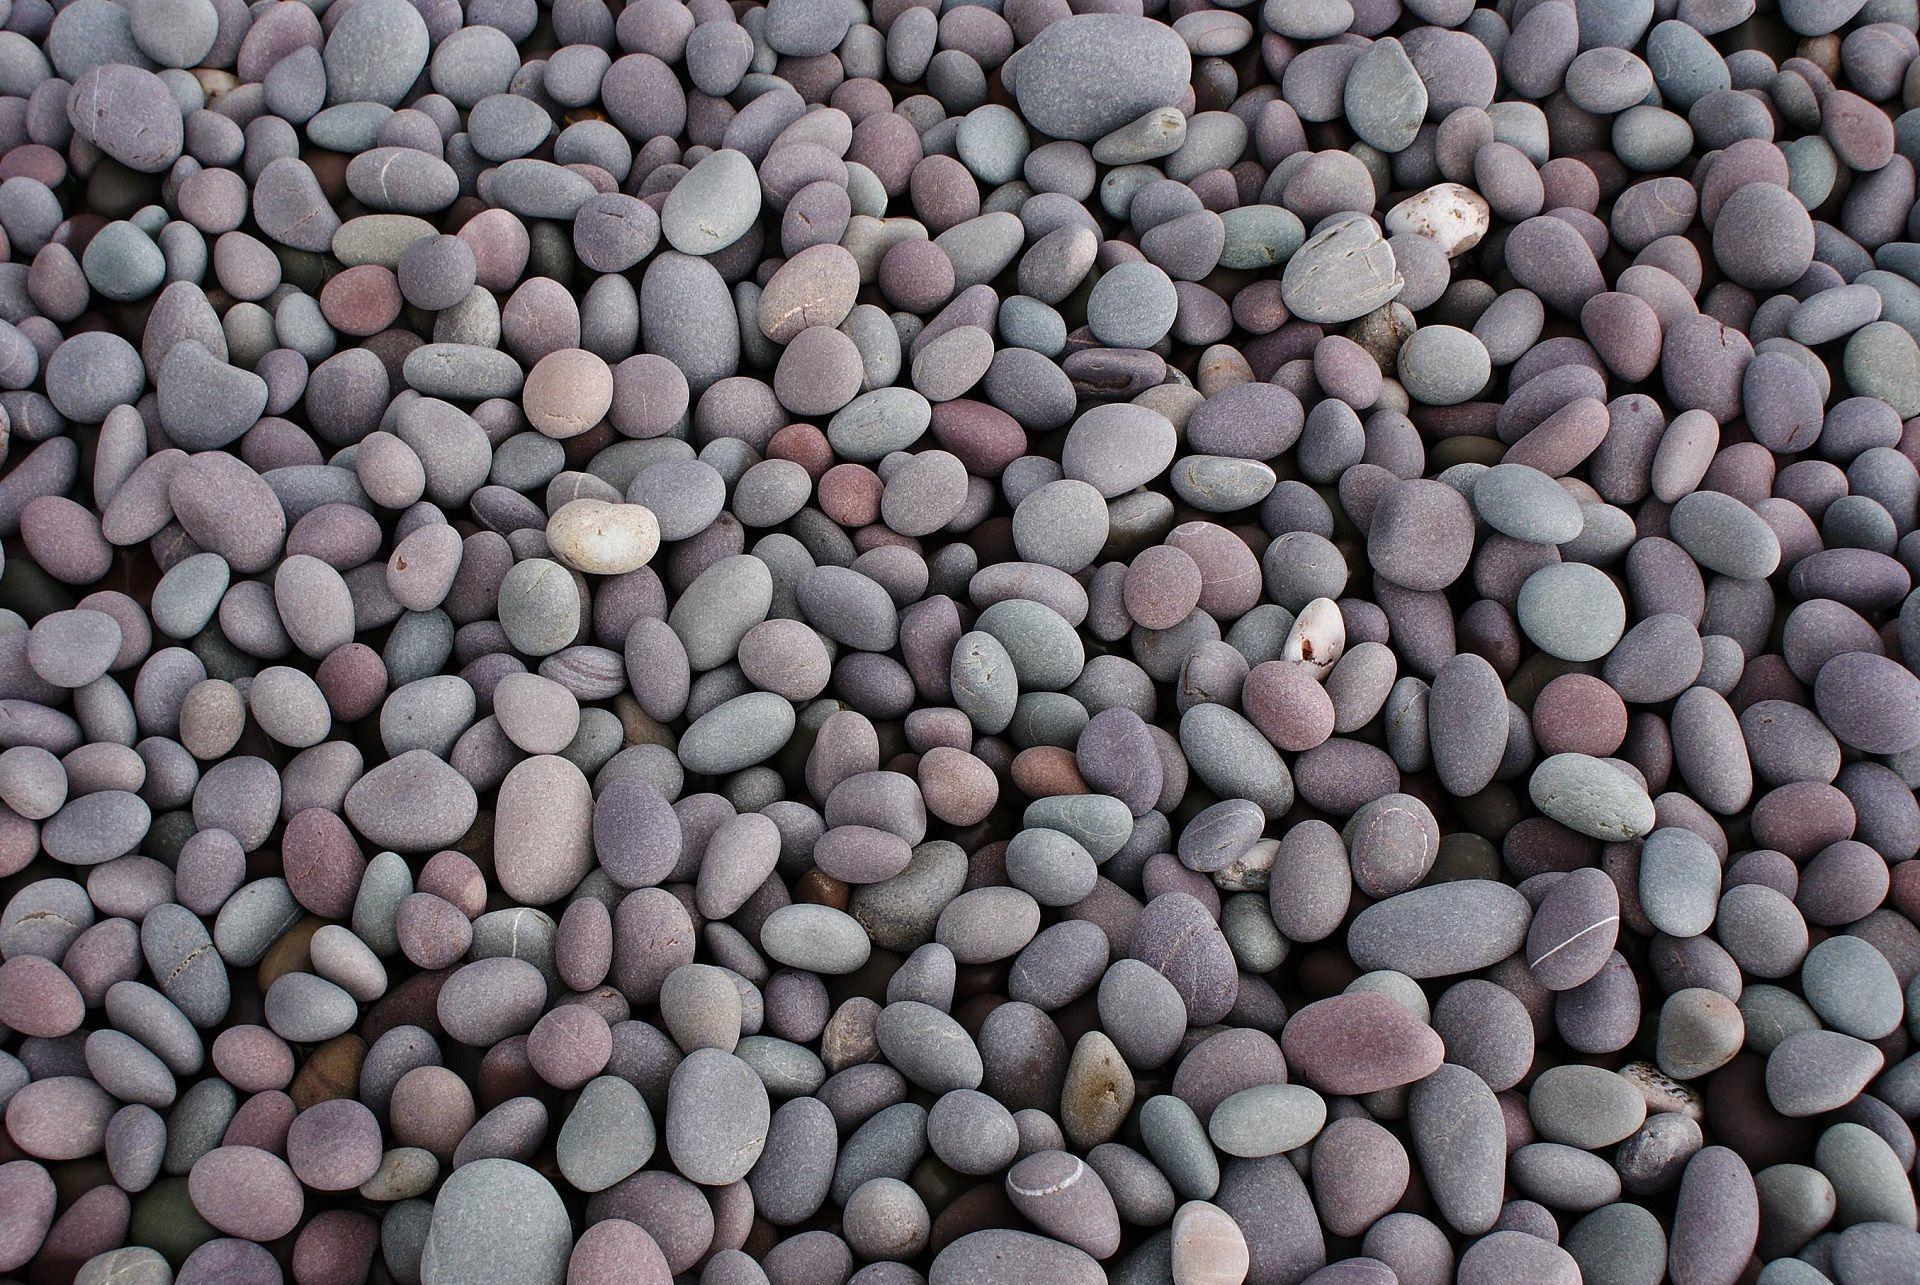 Pebble Stones Wallpaper Background | HD Wallpaper Background